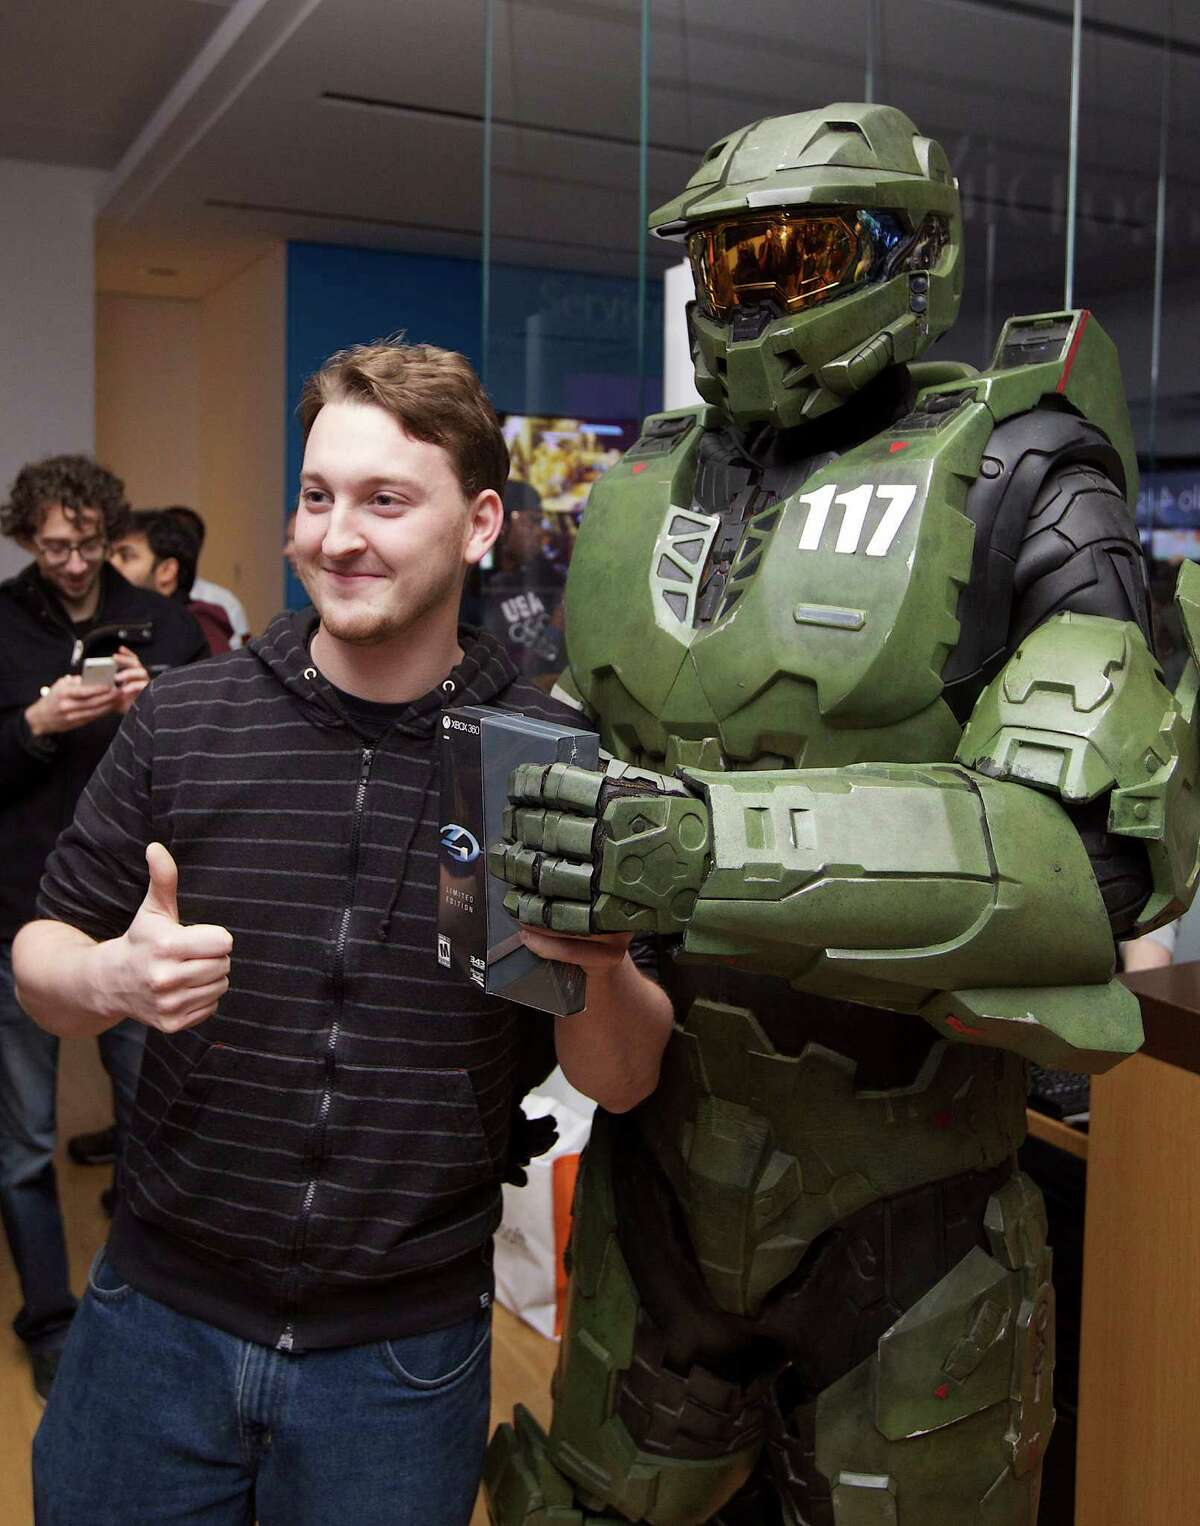 Fans lined up Monday night in Seattle to get their hands on Halo 4, the latest entry in the Xbox game franchise. Peter Gagnon of Seattle was first in line, getting the game just after midnight and a chance to pose with Halo character Master Chief.